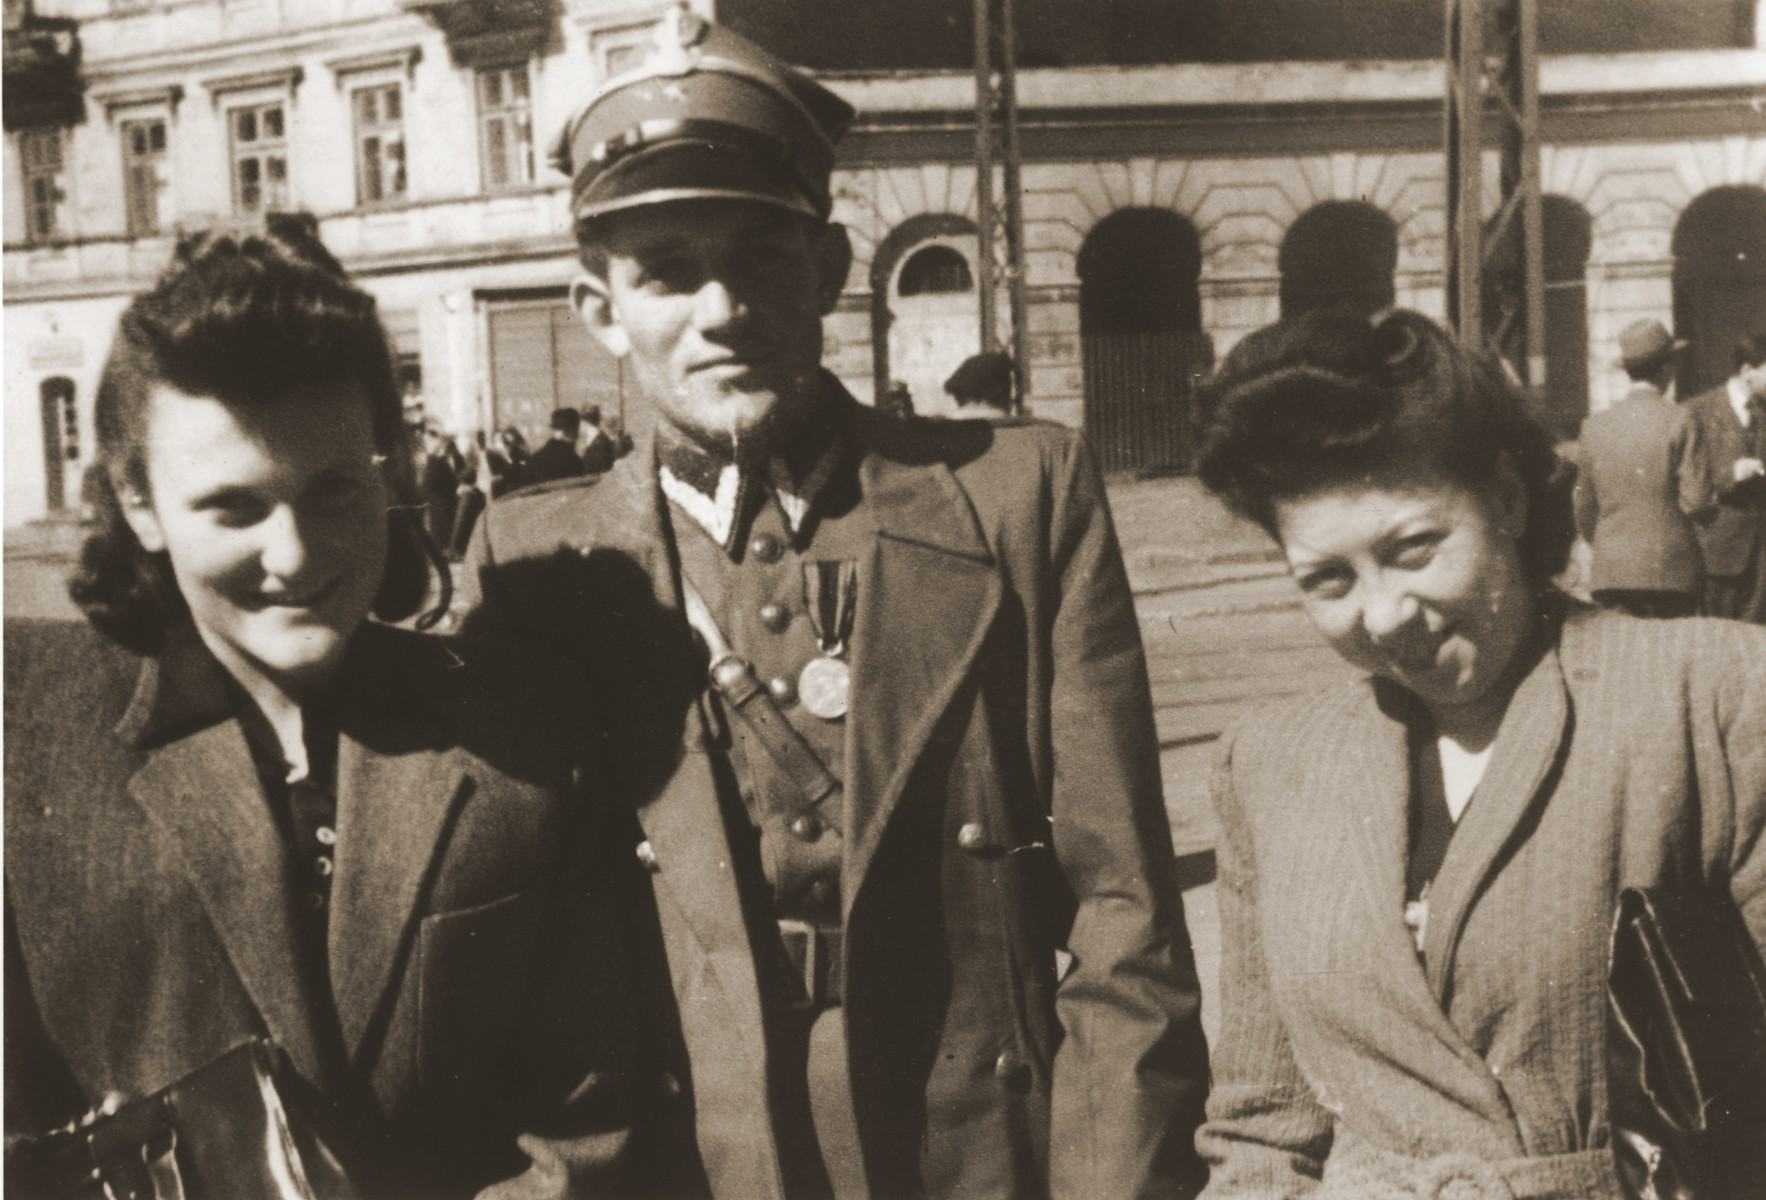 Felicja Berland and a friend pose with a Jewish soldier in the Polish Army on a street in Lodz.